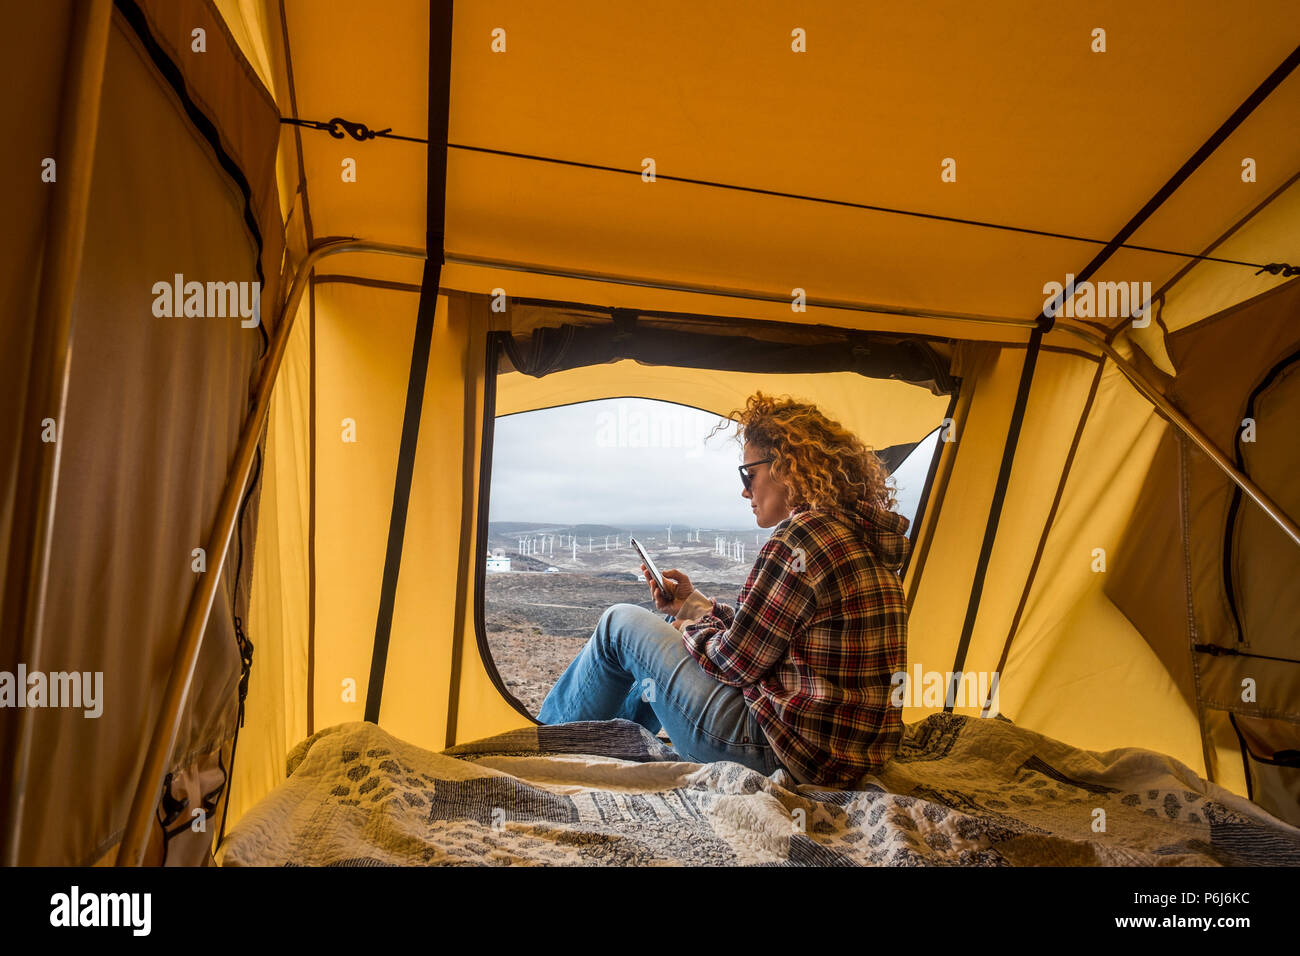 beautiful caucasian woman check the smartphone for internet contacts and work while sit down outside a tent with ocean view. travel and work concept w - Stock Image